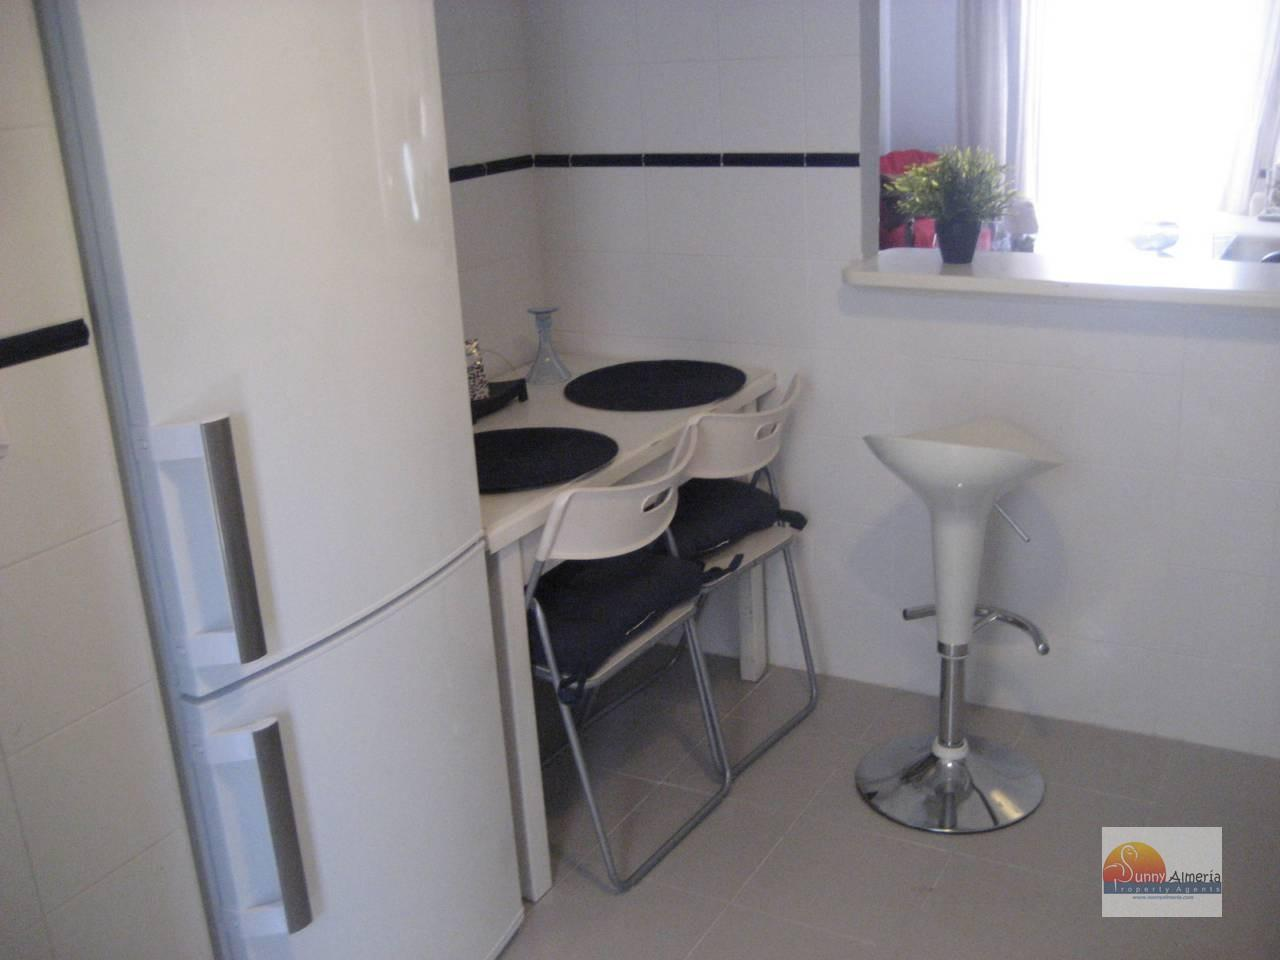 Apartment for rent in av rosita ferrer 4 (Roquetas de Mar), 600 €/month